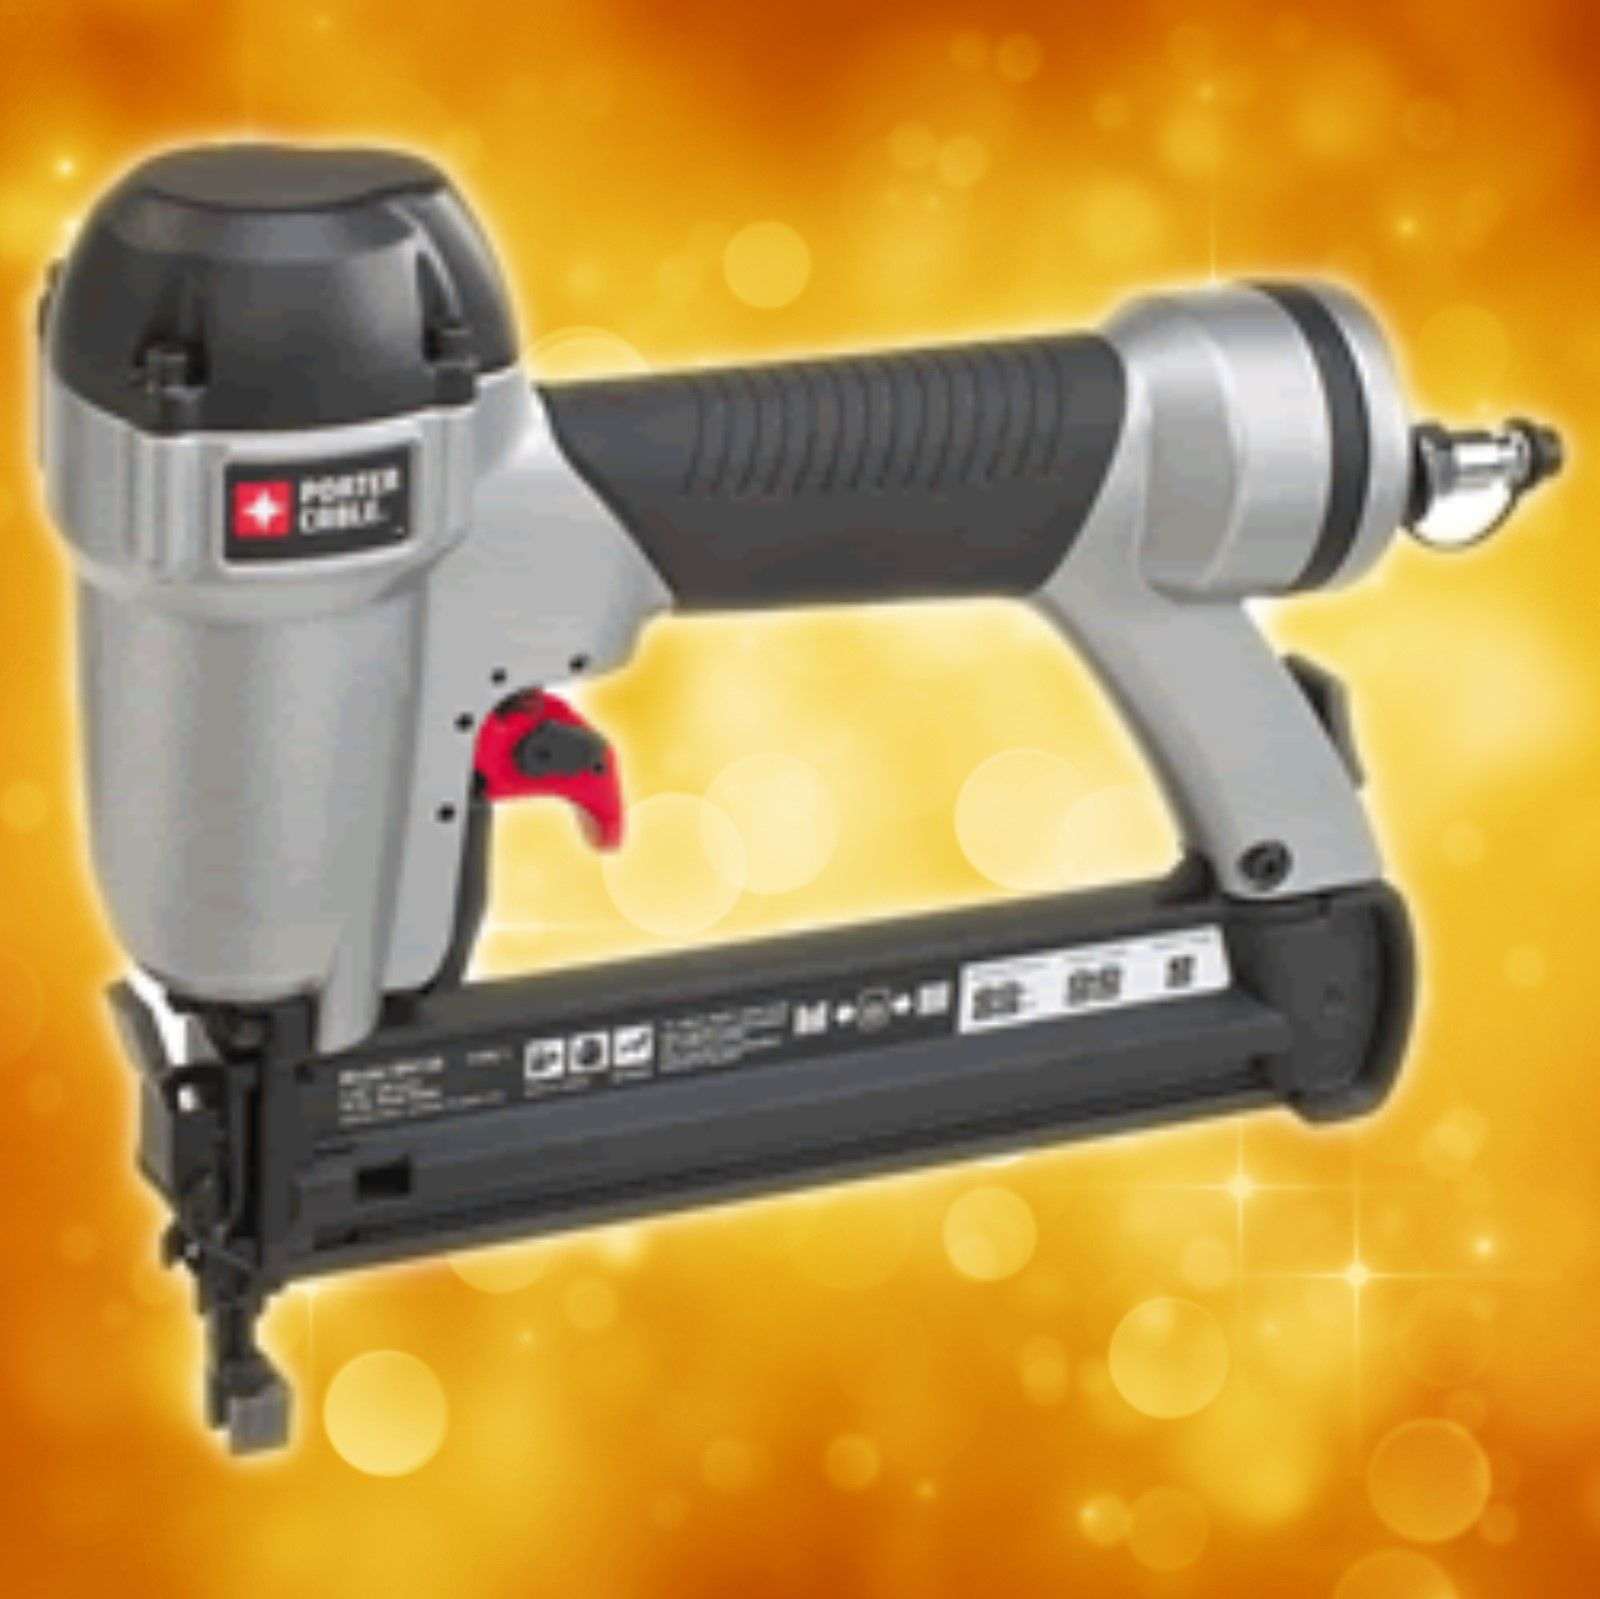 "Porter Cable 18 Ga., 1-3/8"" Brad Nailer Kit BN200C Porter Cable 18 Ga., 1-3/8"" Brad Nailer Kit"